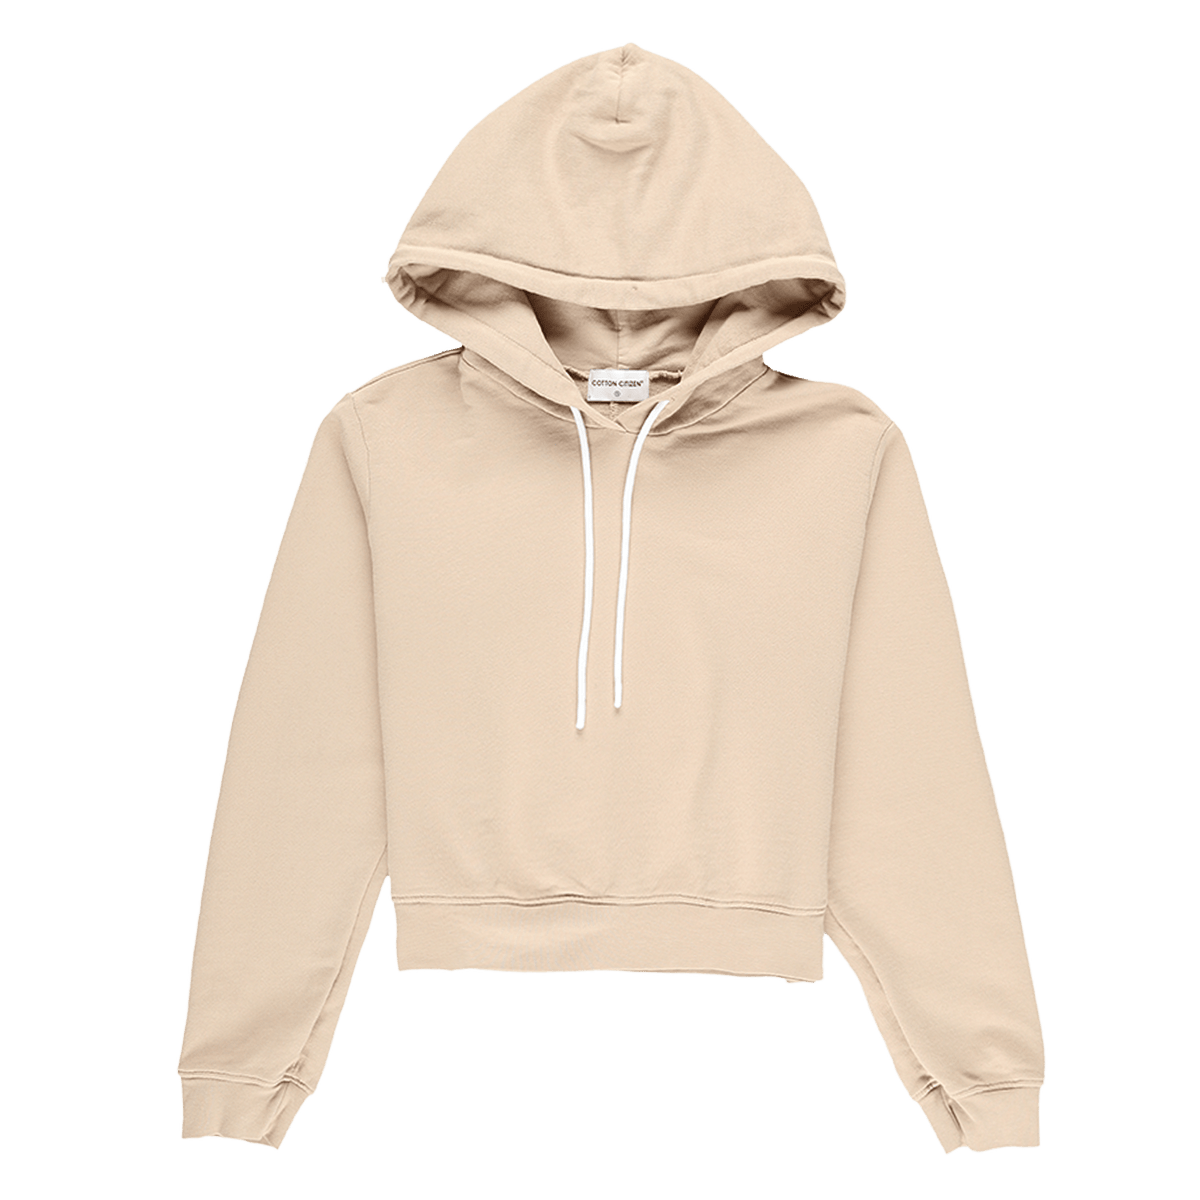 Cotton Citizen Women's Milan Hoodie  - XHIBITION